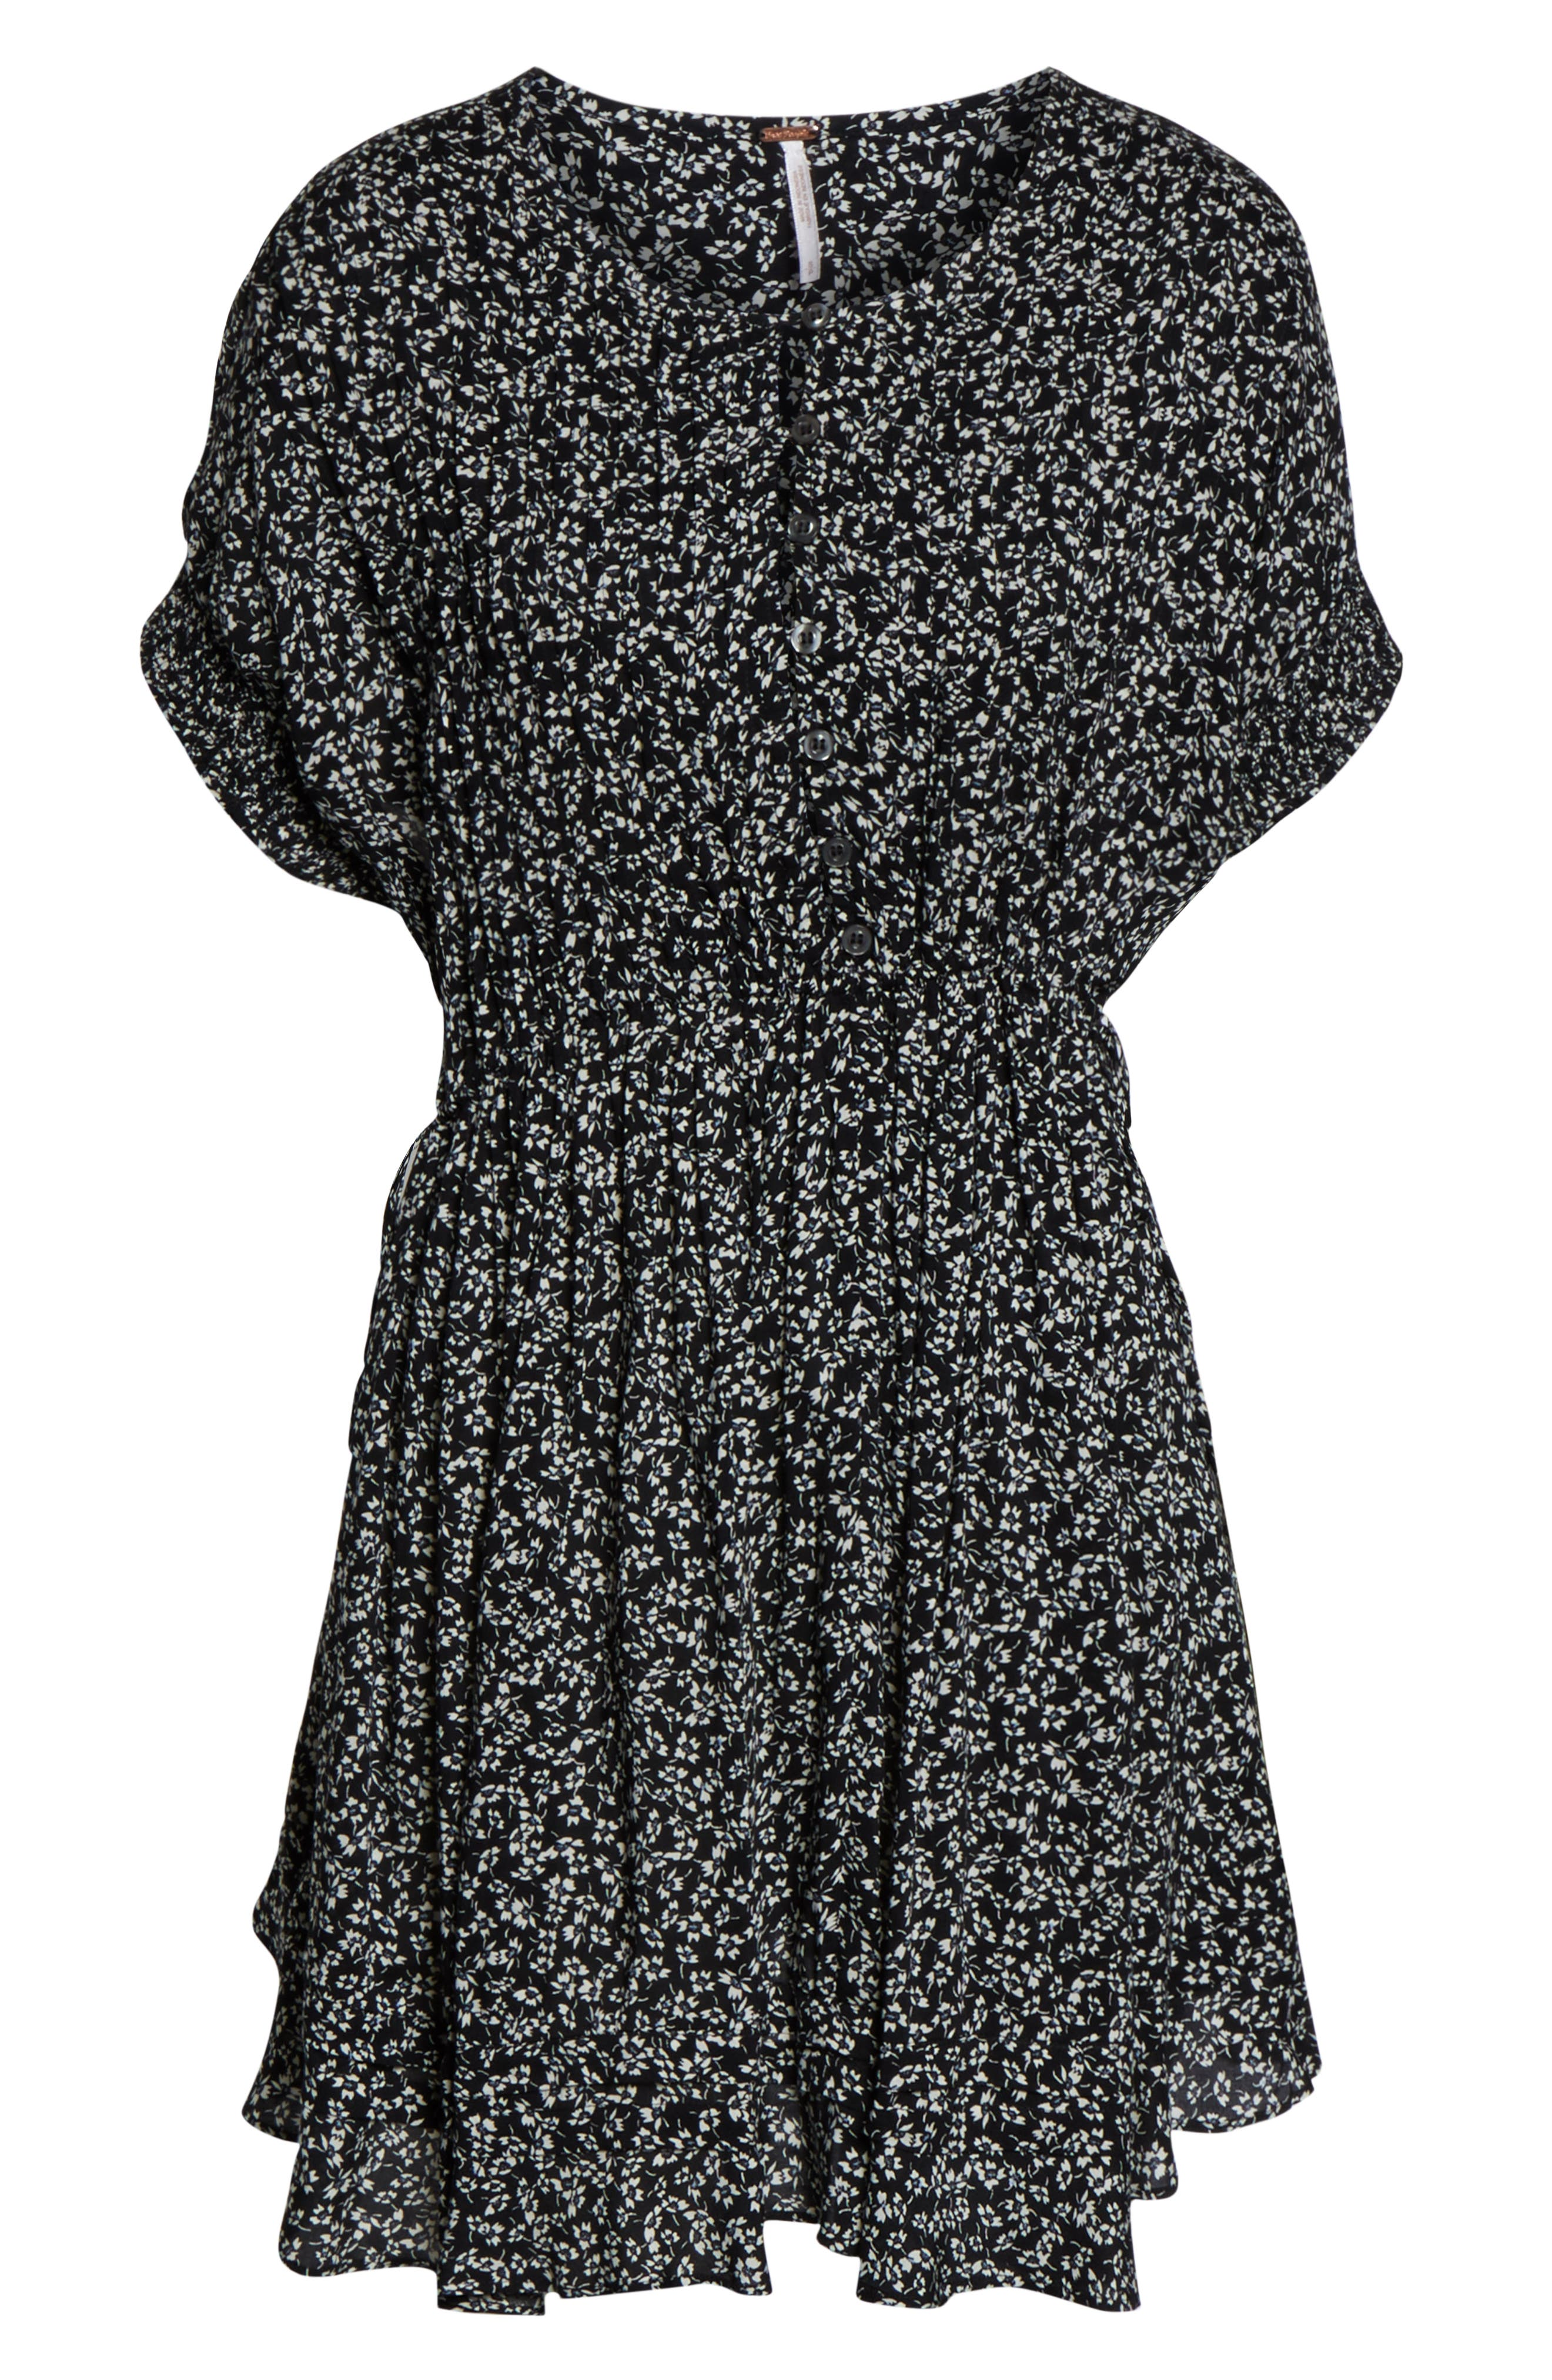 FREE PEOPLE, One Fine Day Minidress, Alternate thumbnail 6, color, 019